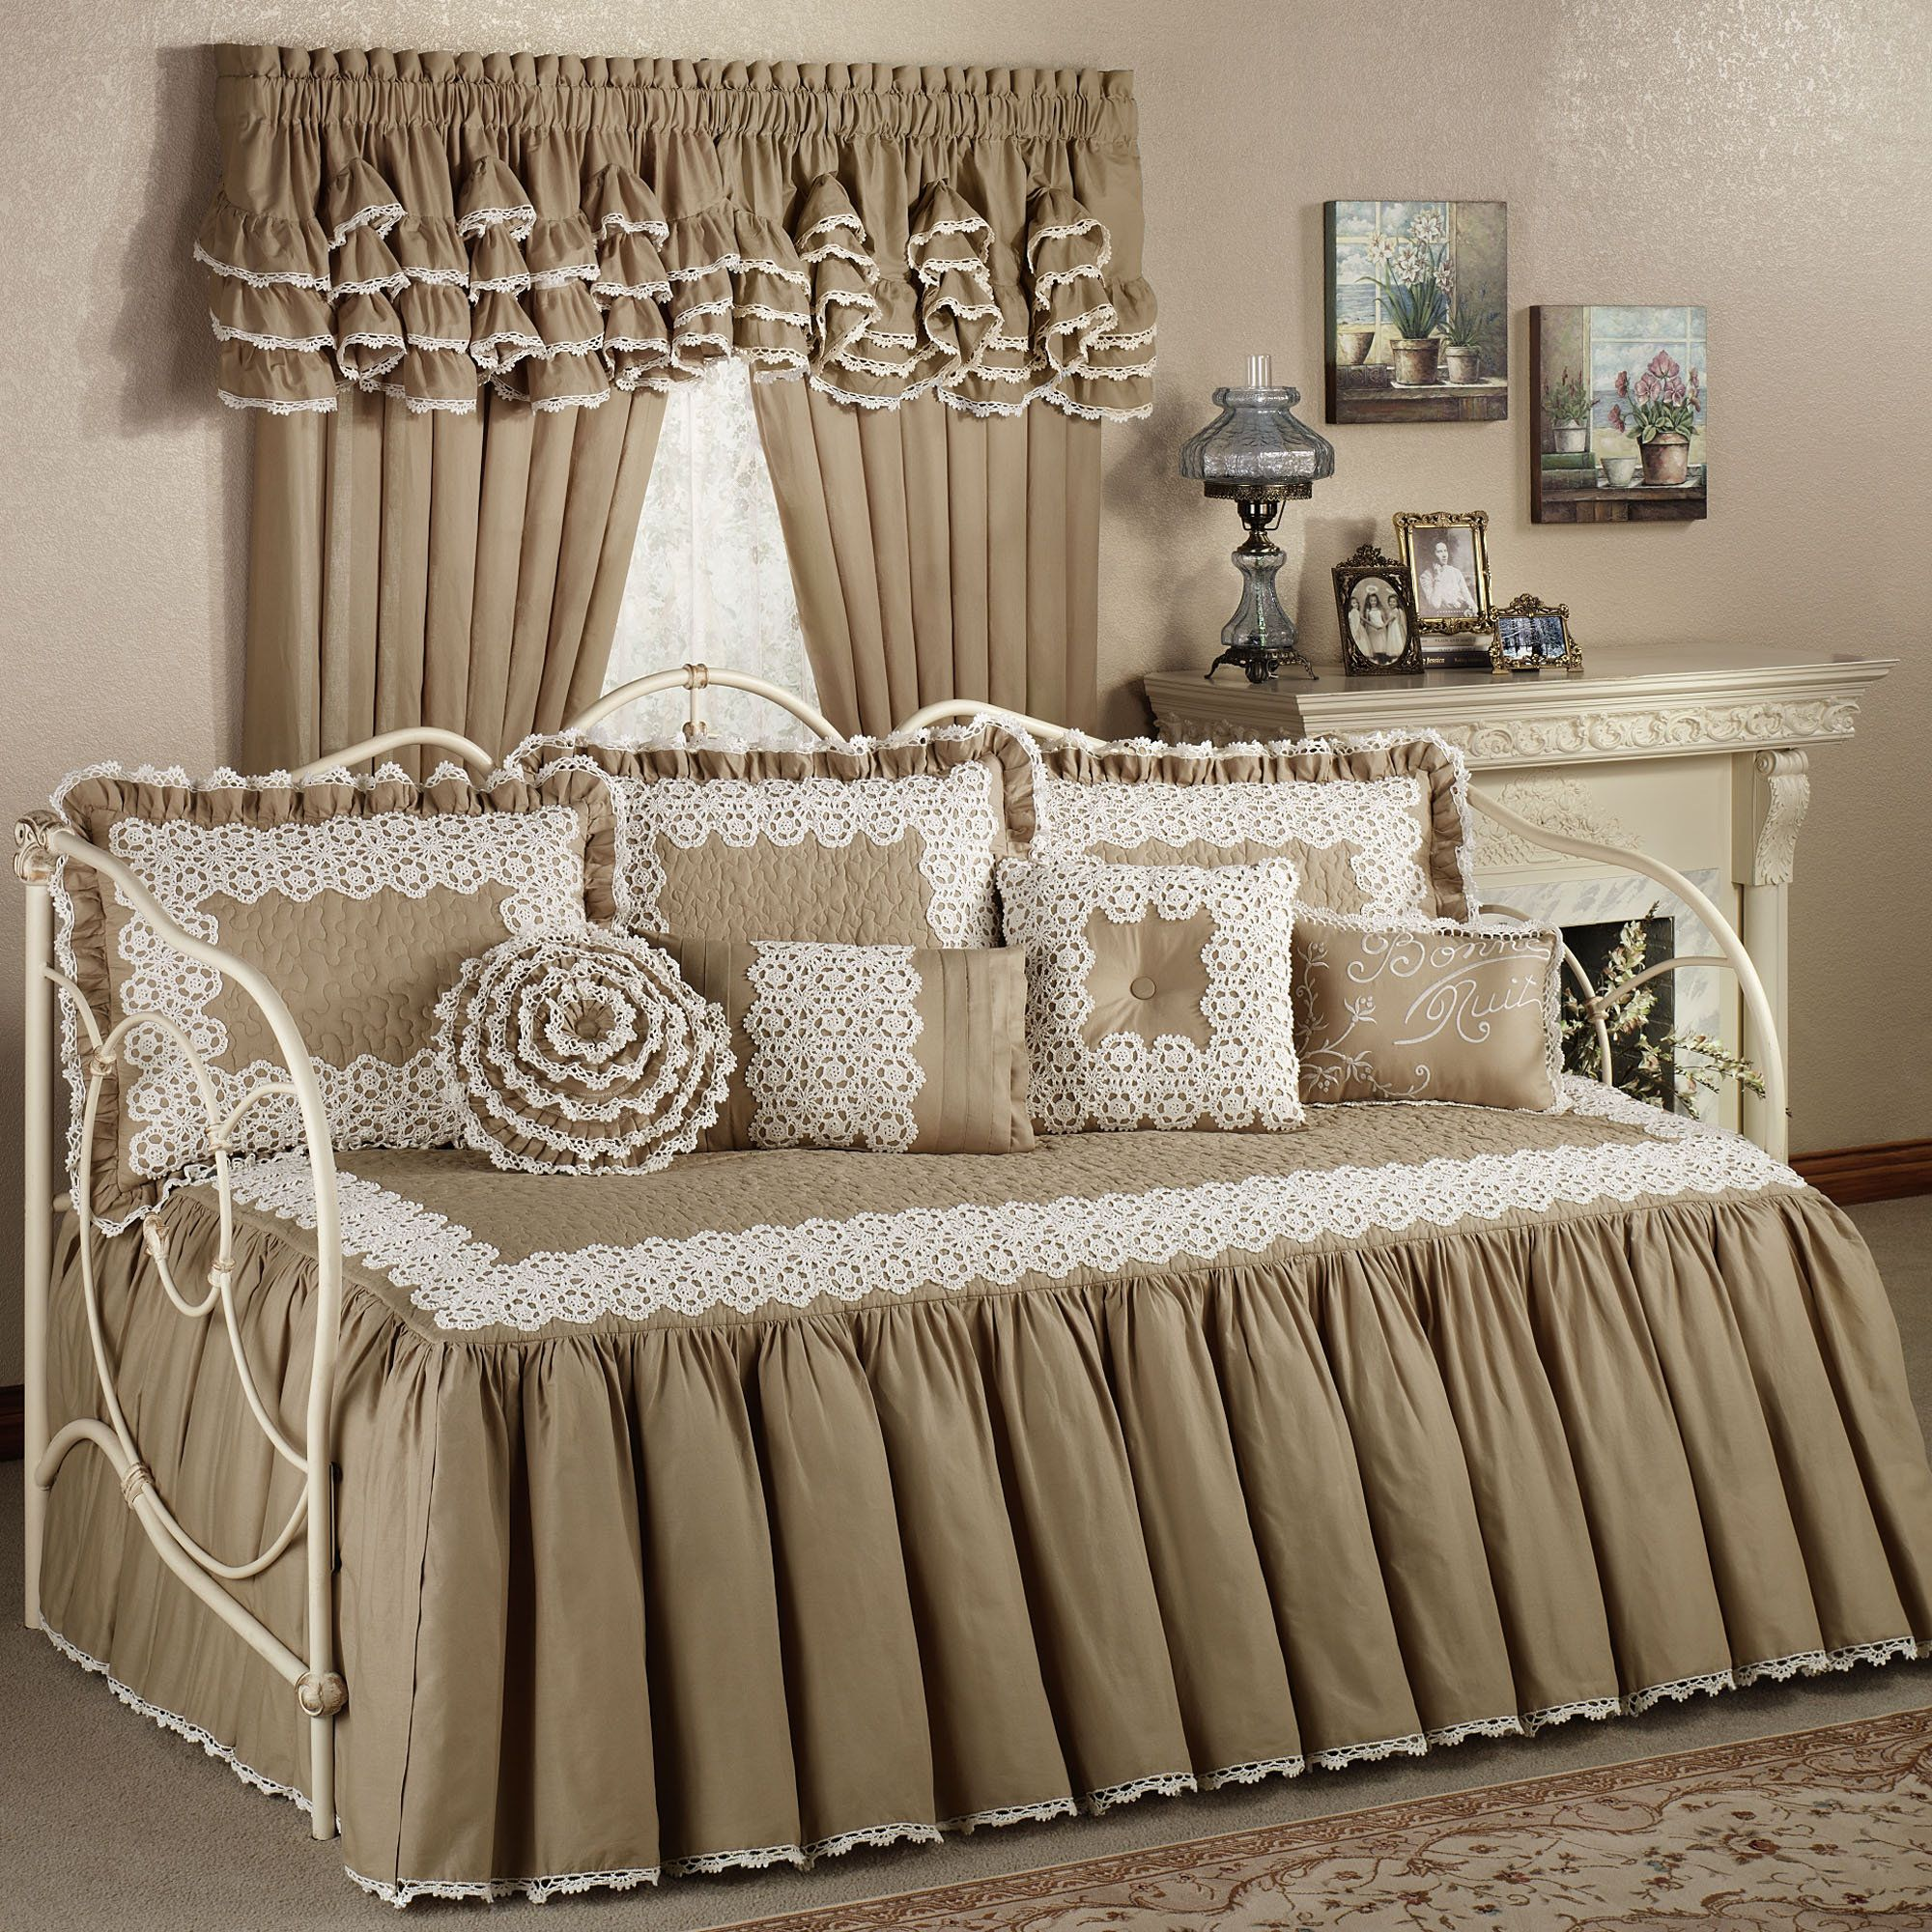 Antiquity Crochet Daybed Set Bedding | Daybed sets, Daybed and Bed ...